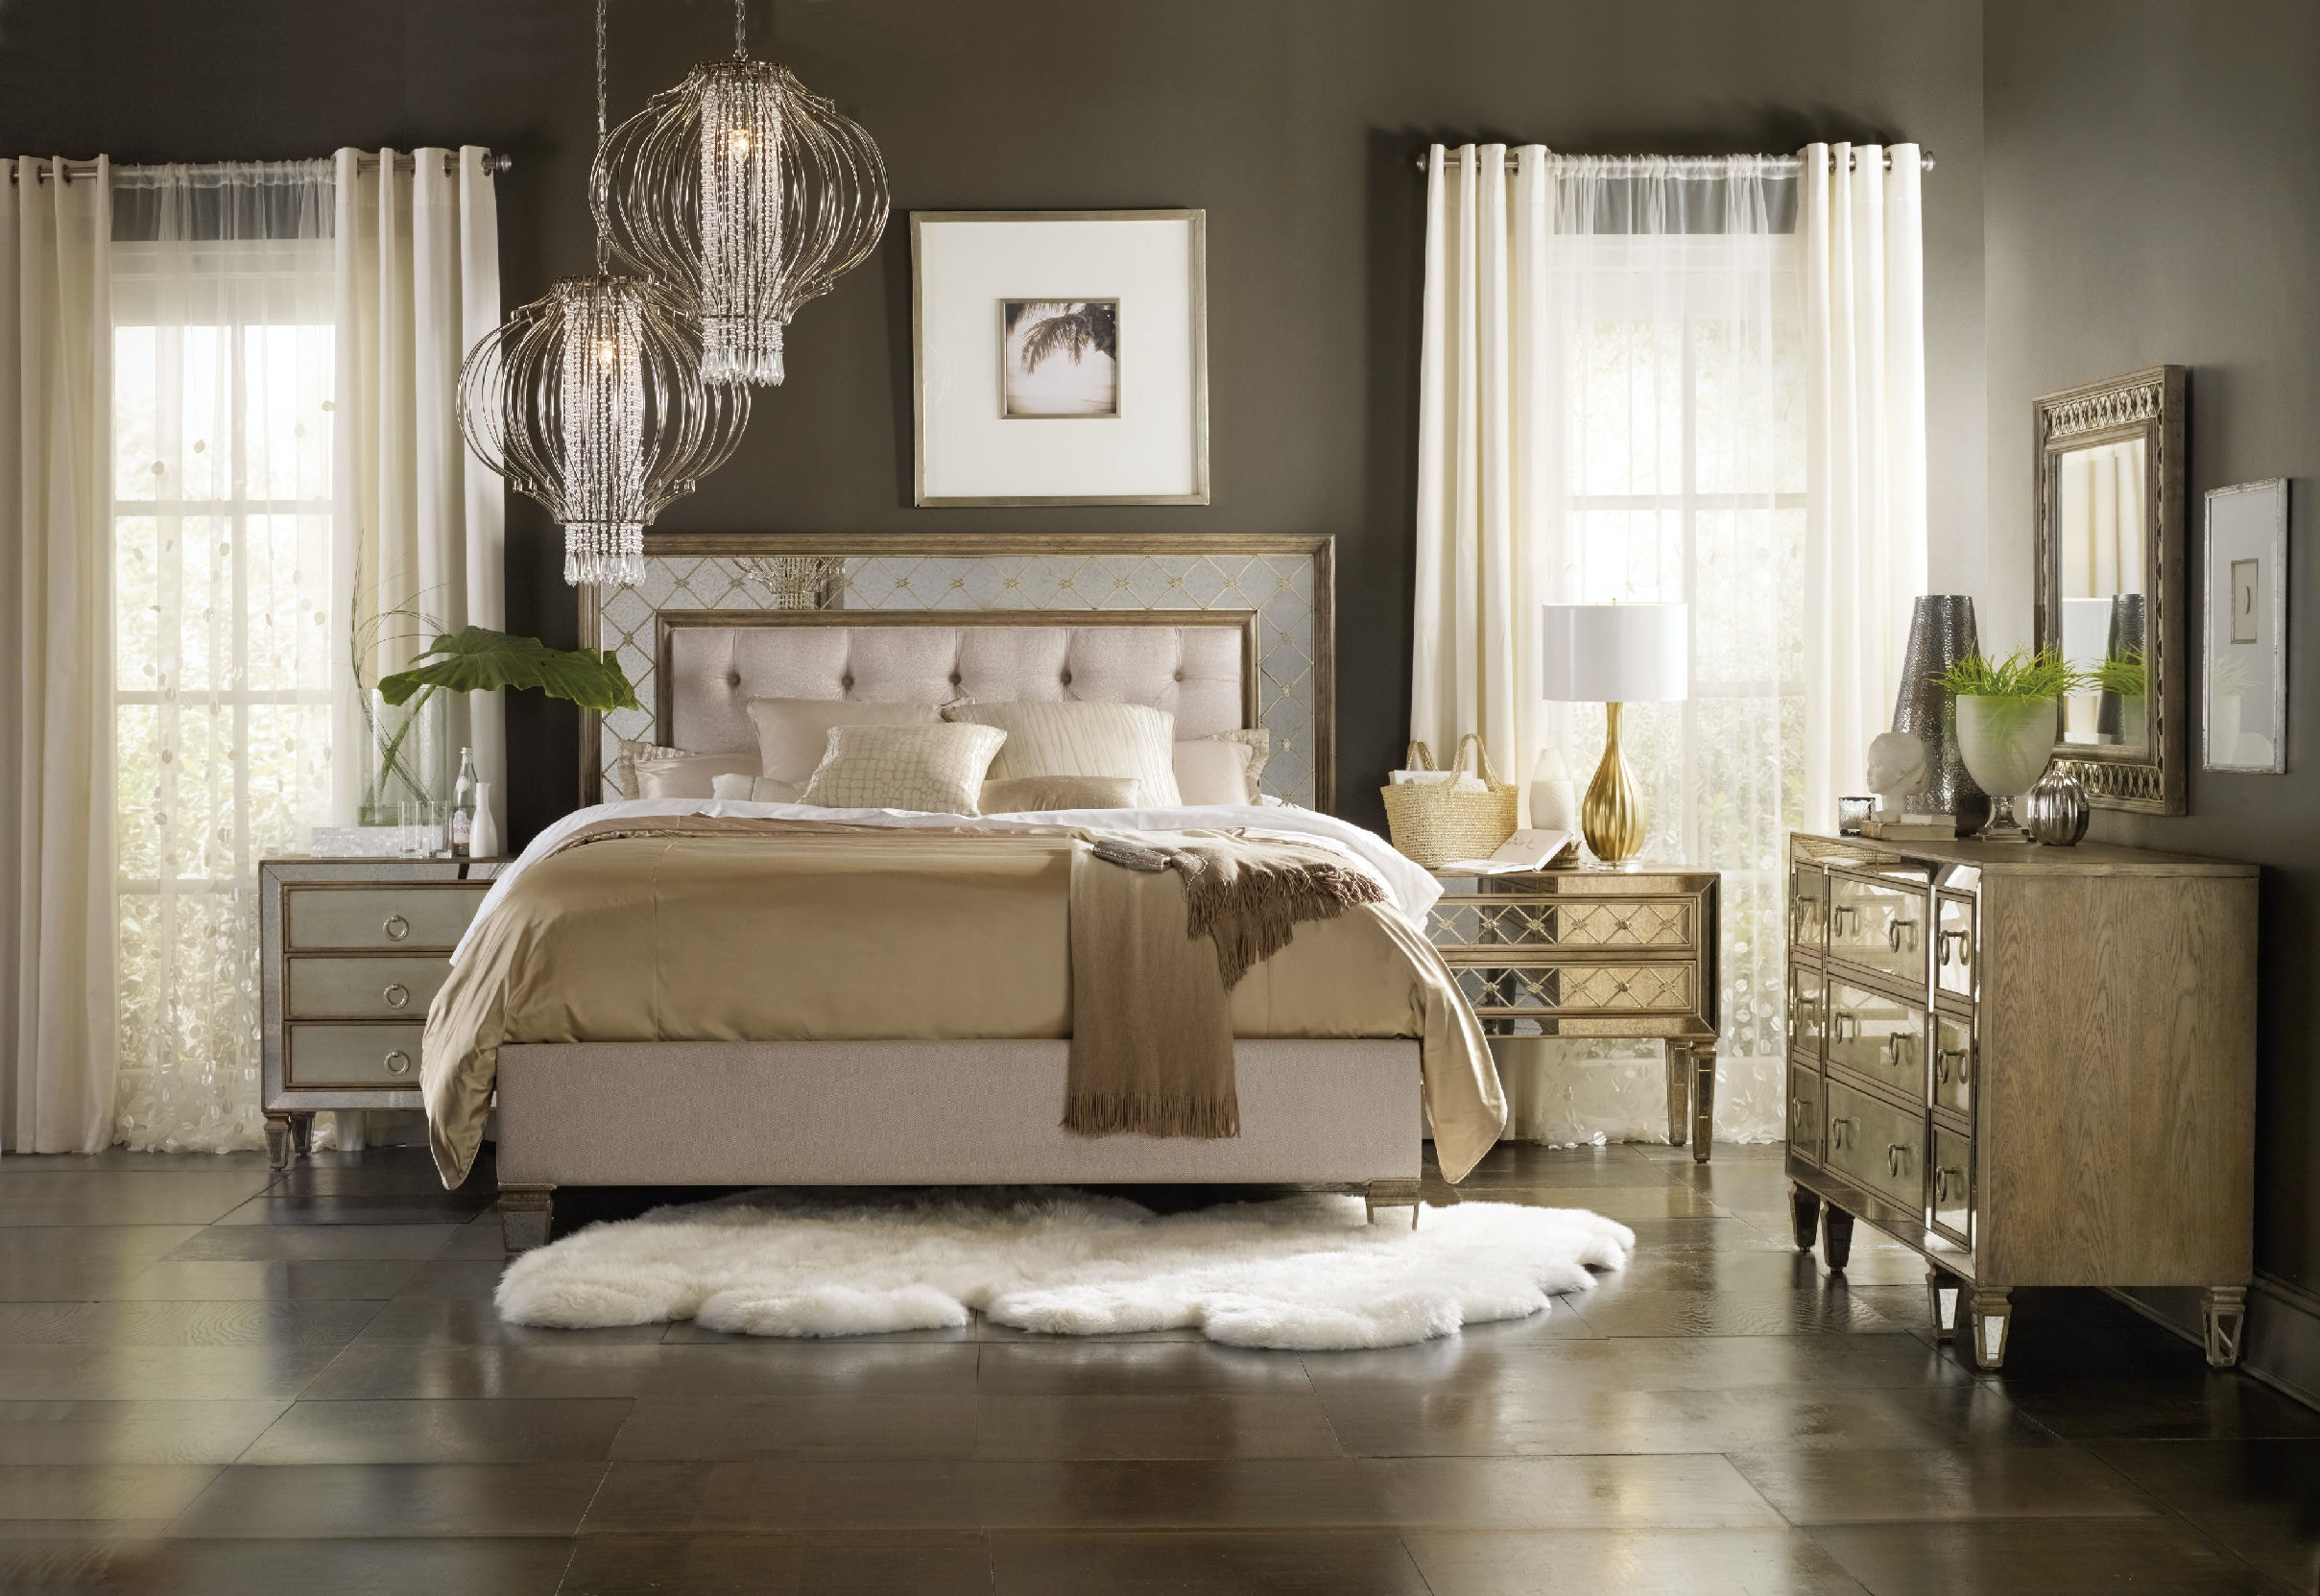 Superior Hooker Furniture Sanctuary King Mirrored Upholstered Bed 5414 90866